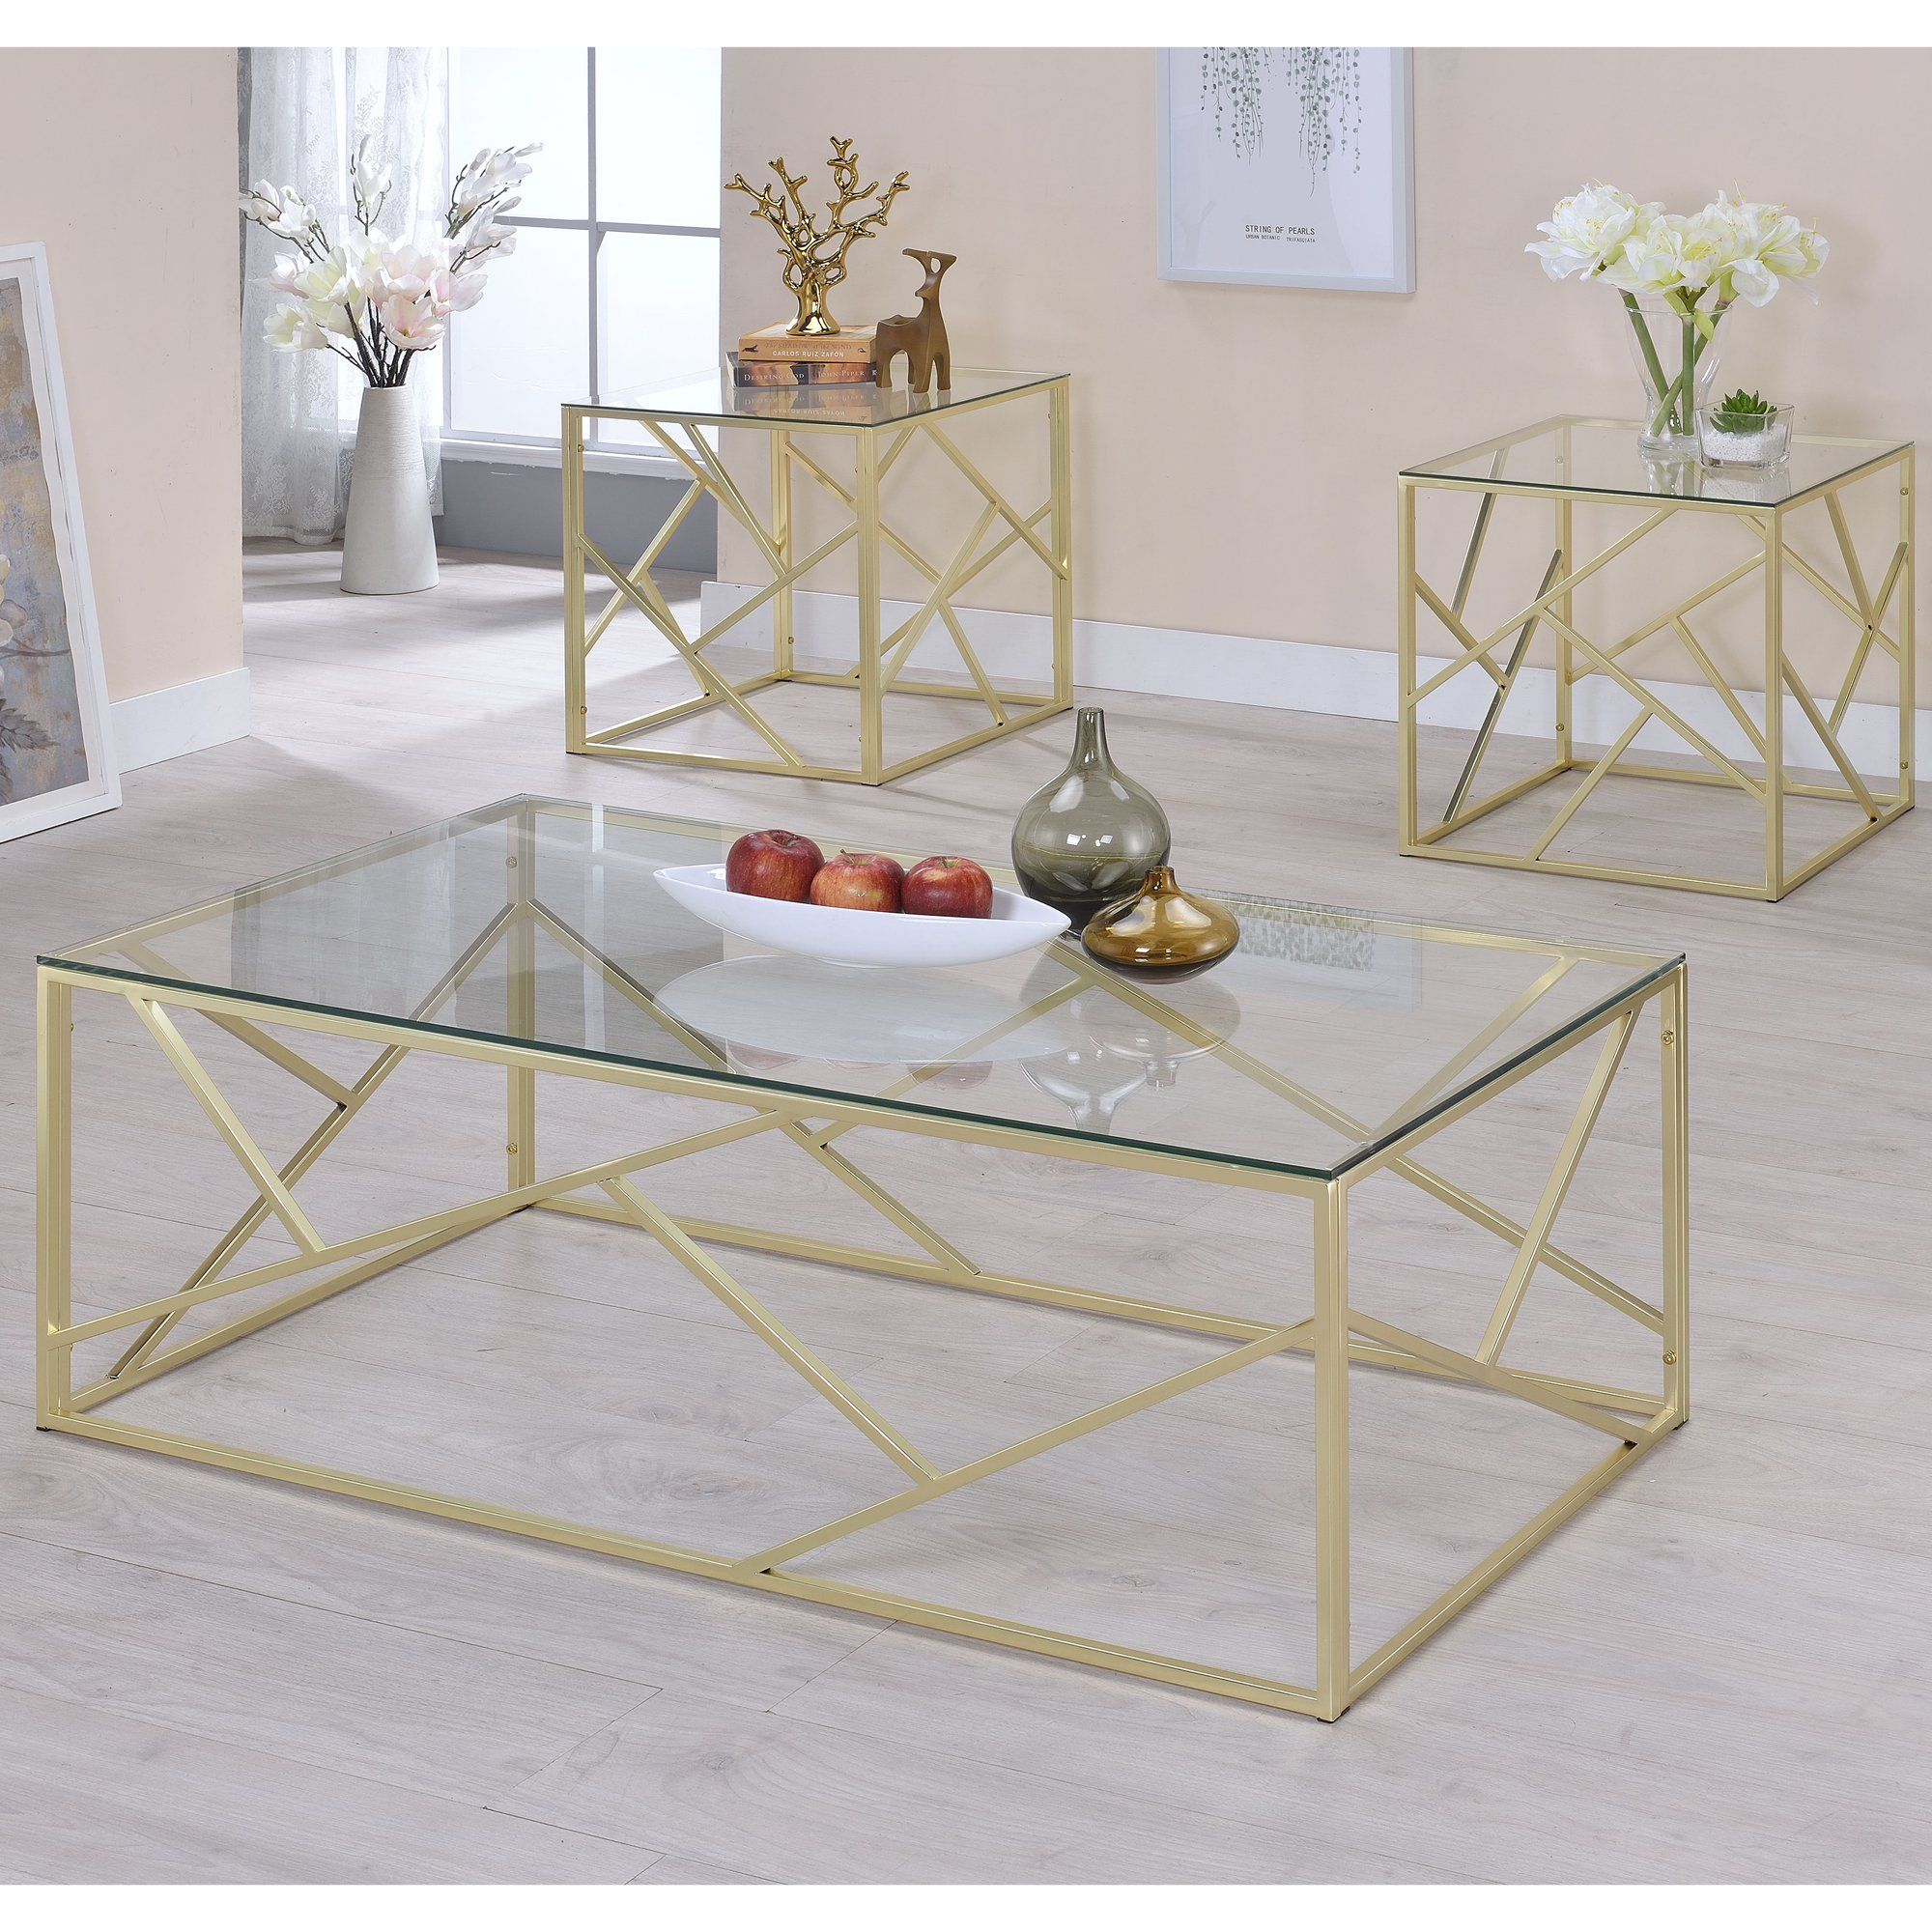 Furniture Of America Roth Contemporary 3 Piece Coffee Table Set Champagne Walmart Com In 2021 Glass Accent Tables Coffee Table 3 Piece Coffee Table Set [ 2000 x 2000 Pixel ]